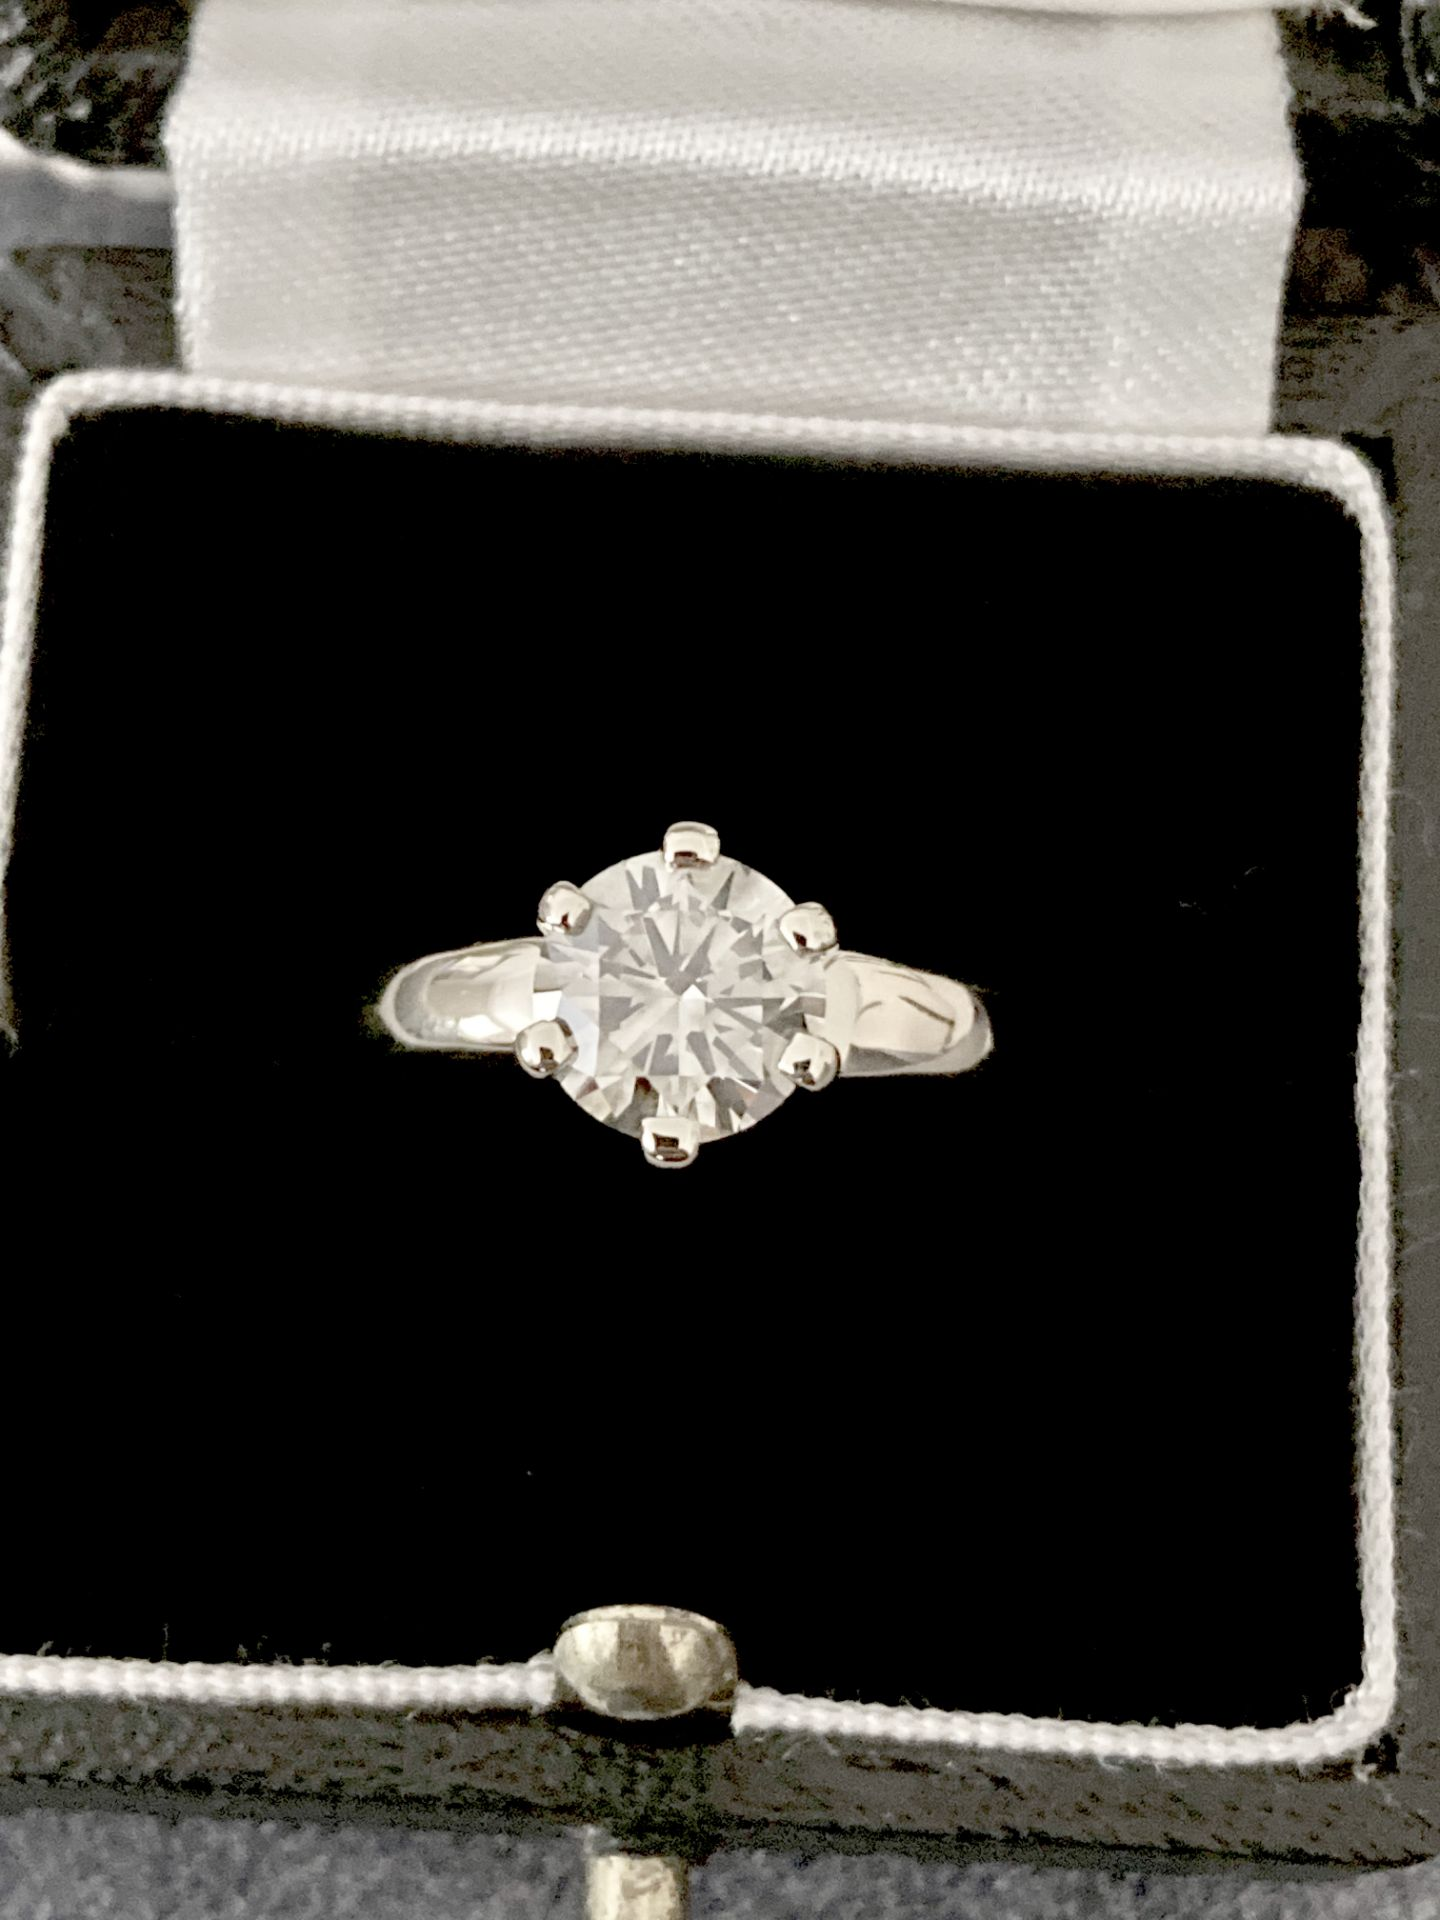 1.54CT DIAMOND SOLITAIRE RING Y. GOLD (ROUND BRILLIANT) - 2012 VALUATION £6,200 INCLUDED - Image 12 of 14